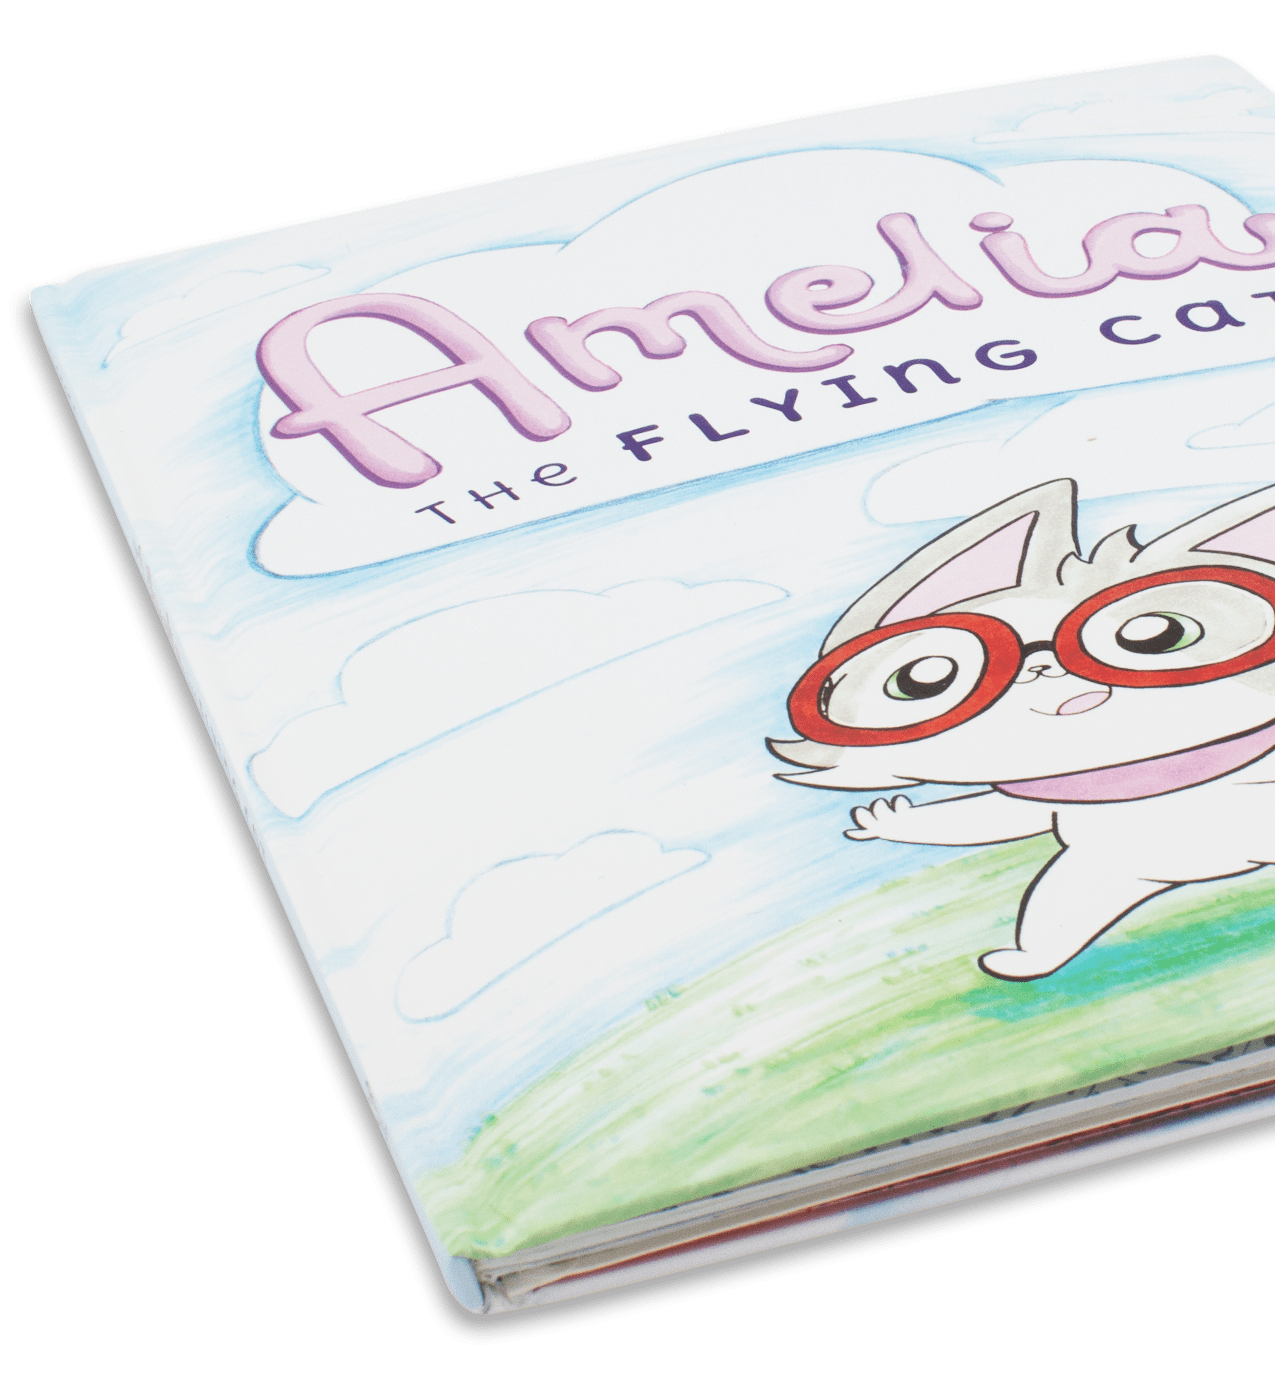 Premium Hardcover Children's Book Printing